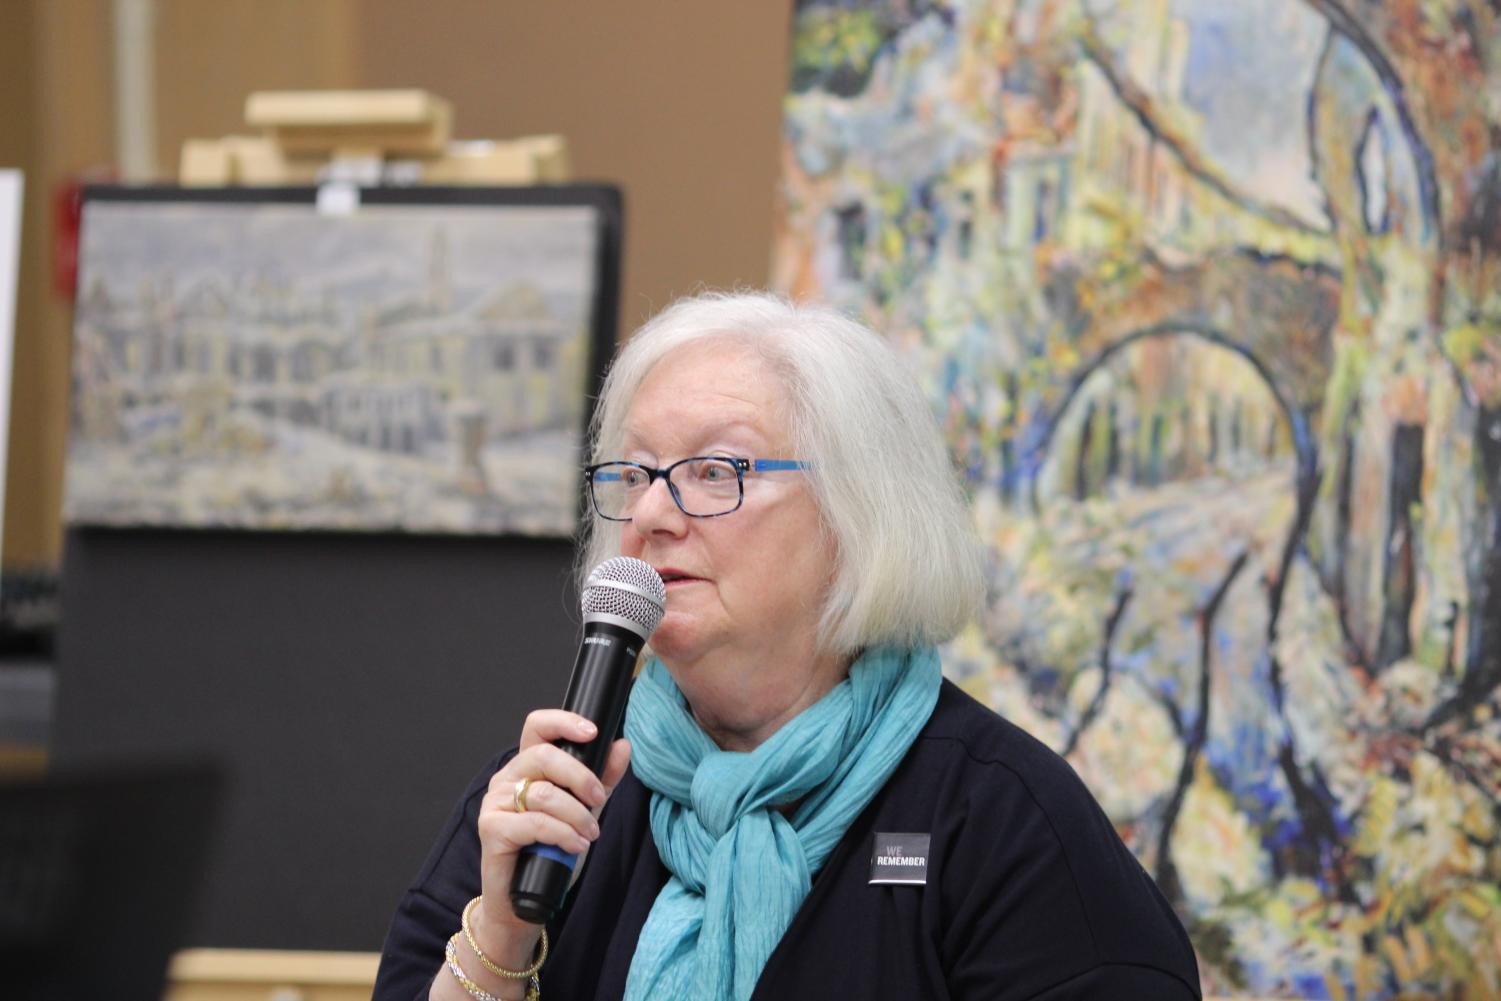 Holocaust+survivor+Louise+Lawrence-Israels+speaks+to+the+sophomore+class+about+her+life+on+May+9+during+the+David+Labkovski+Project.